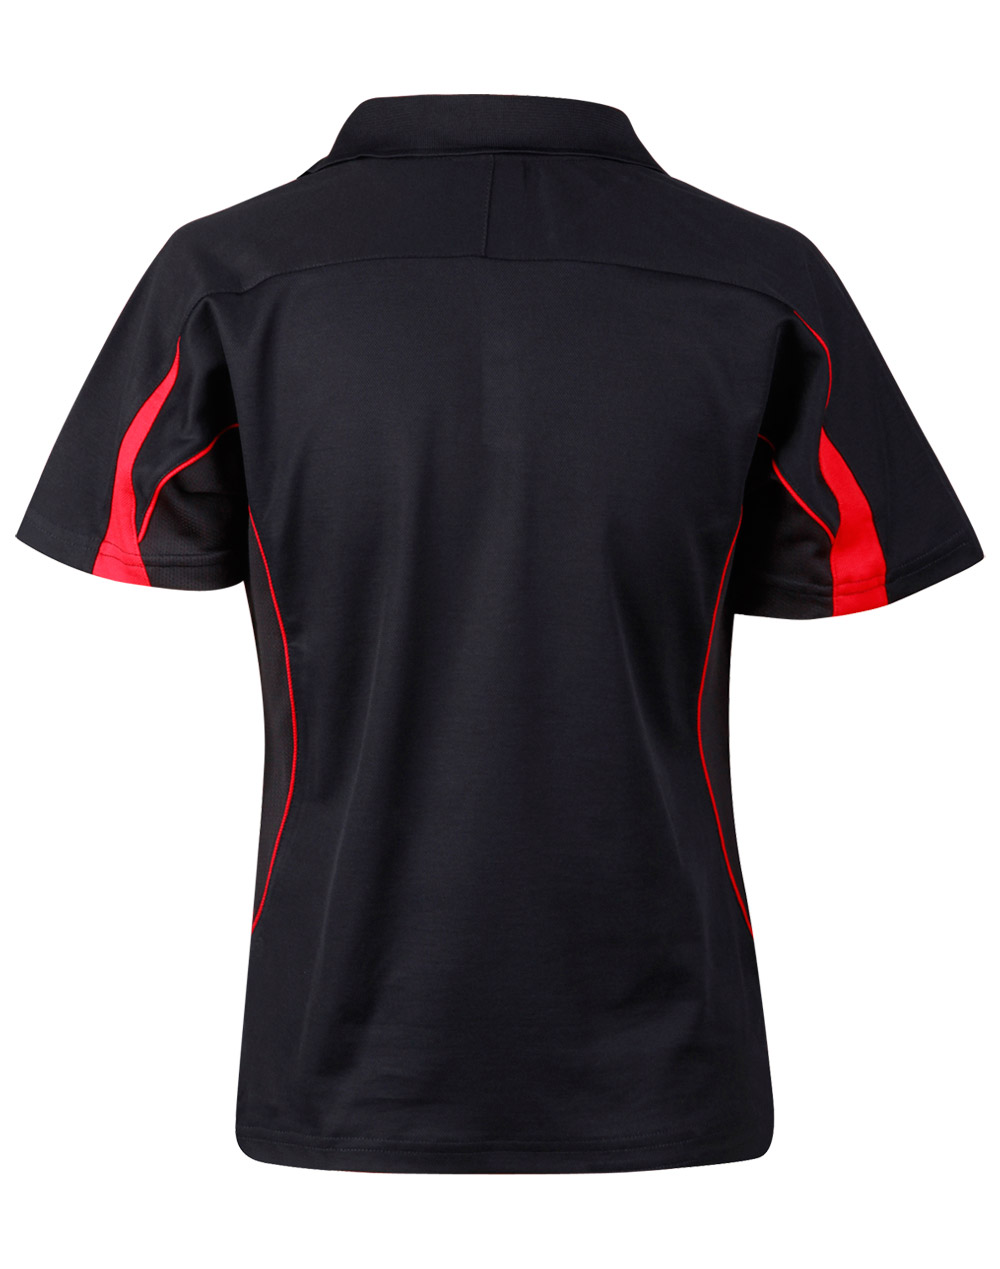 https://s3-ap-southeast-1.amazonaws.com/ws-imgs/POLOSHIRTS/PS54_NavyRed_Back.jpg